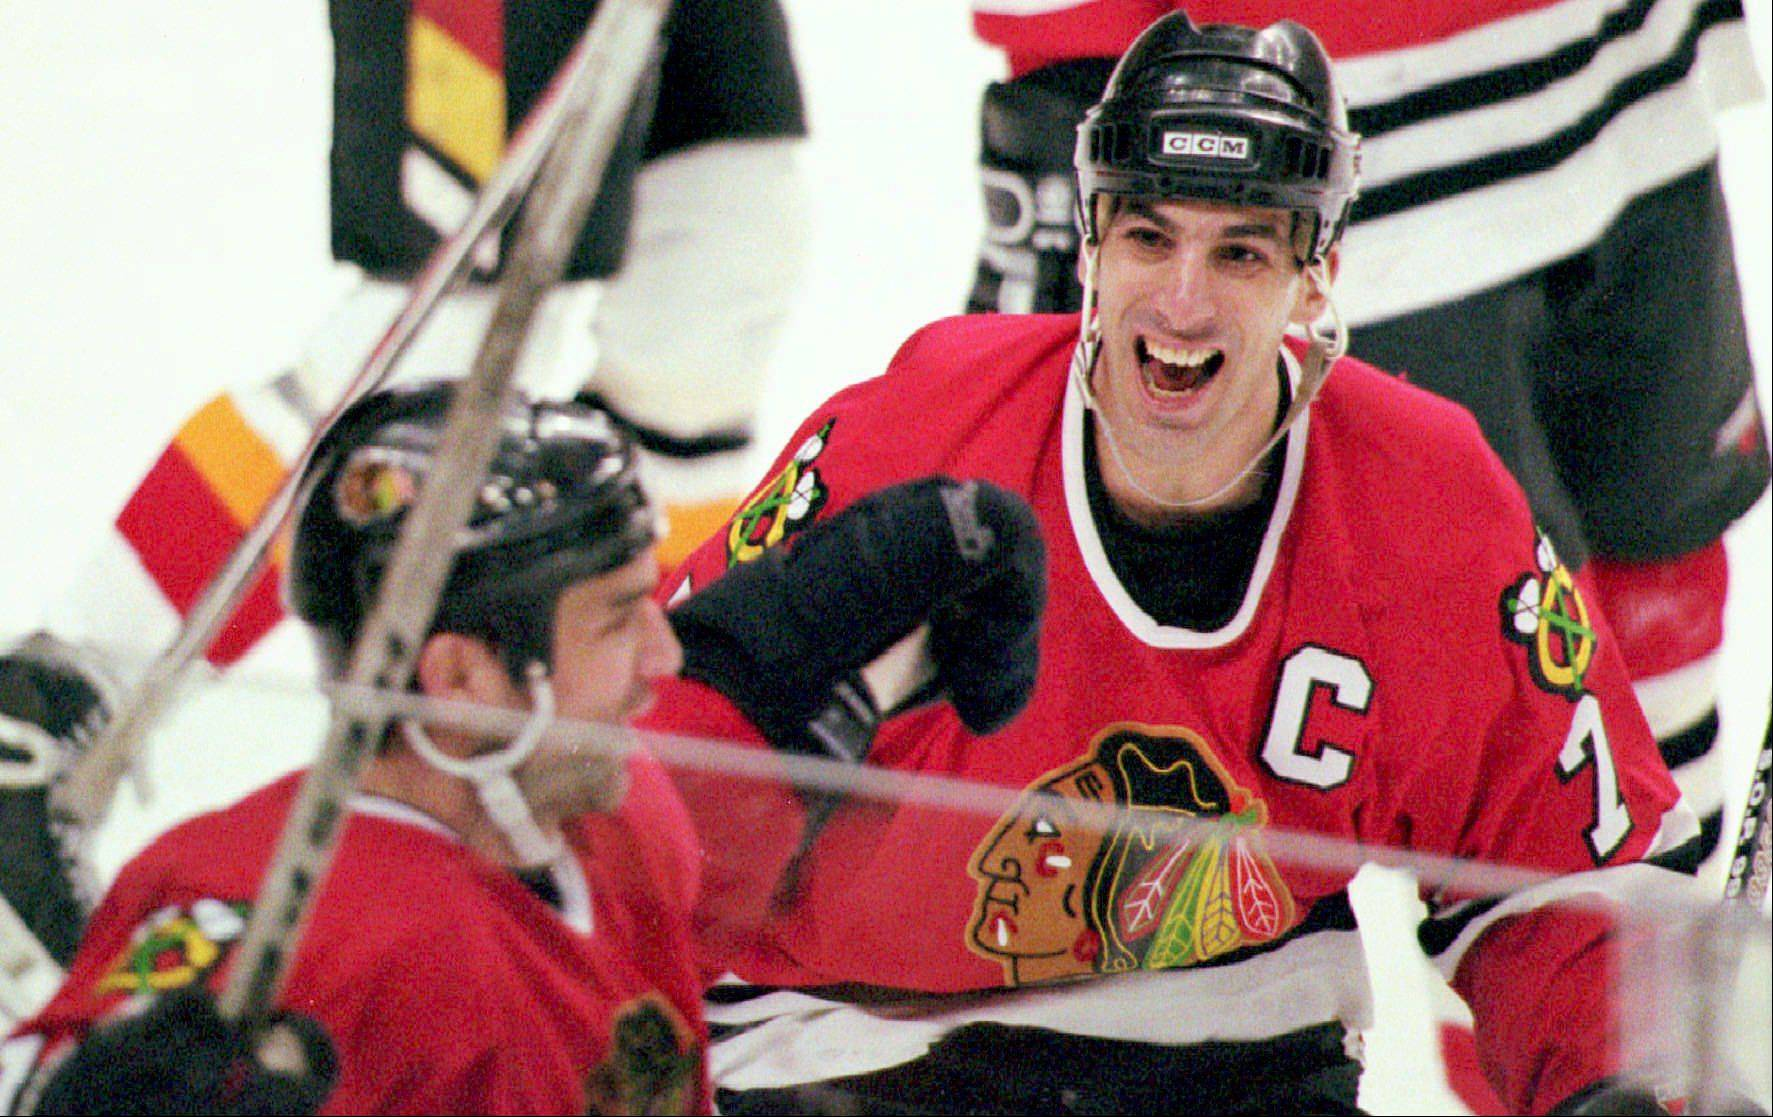 @$ID/[No paragraph style]:Blackhawks captain Chris Chelios congratulates teammate Joe Murphy in this April 24, 1996, photo.